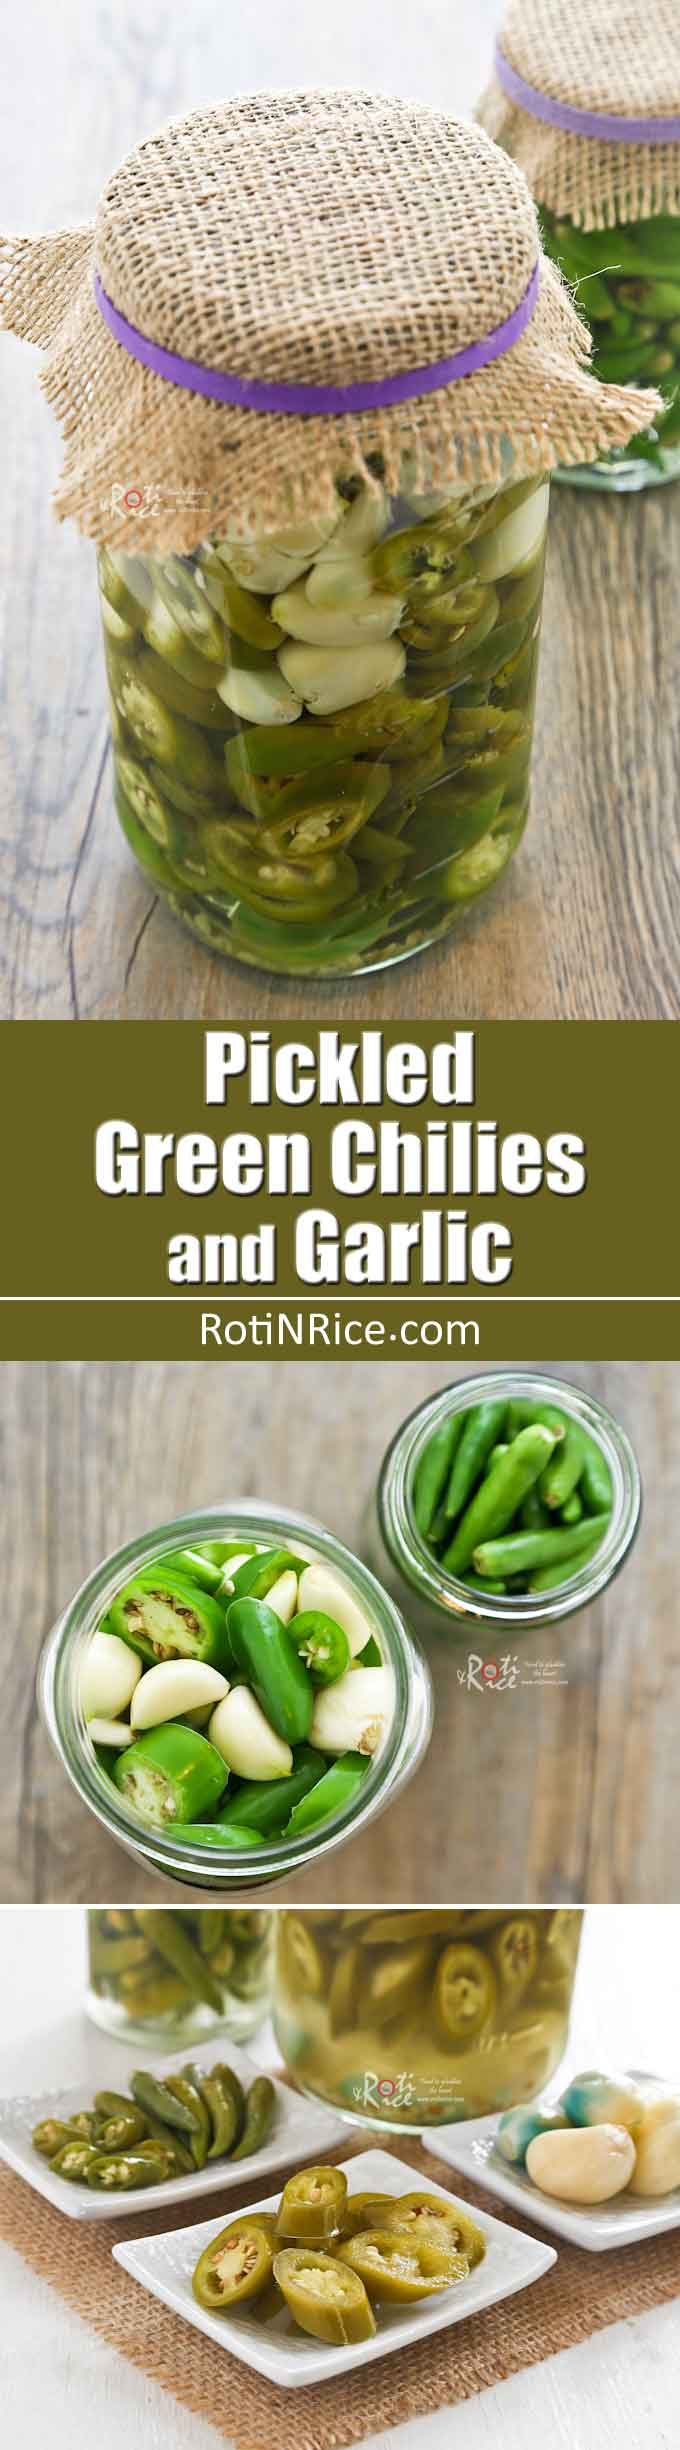 Pickled Green Chilies and Garlic are wonderful eaten with noodles ...